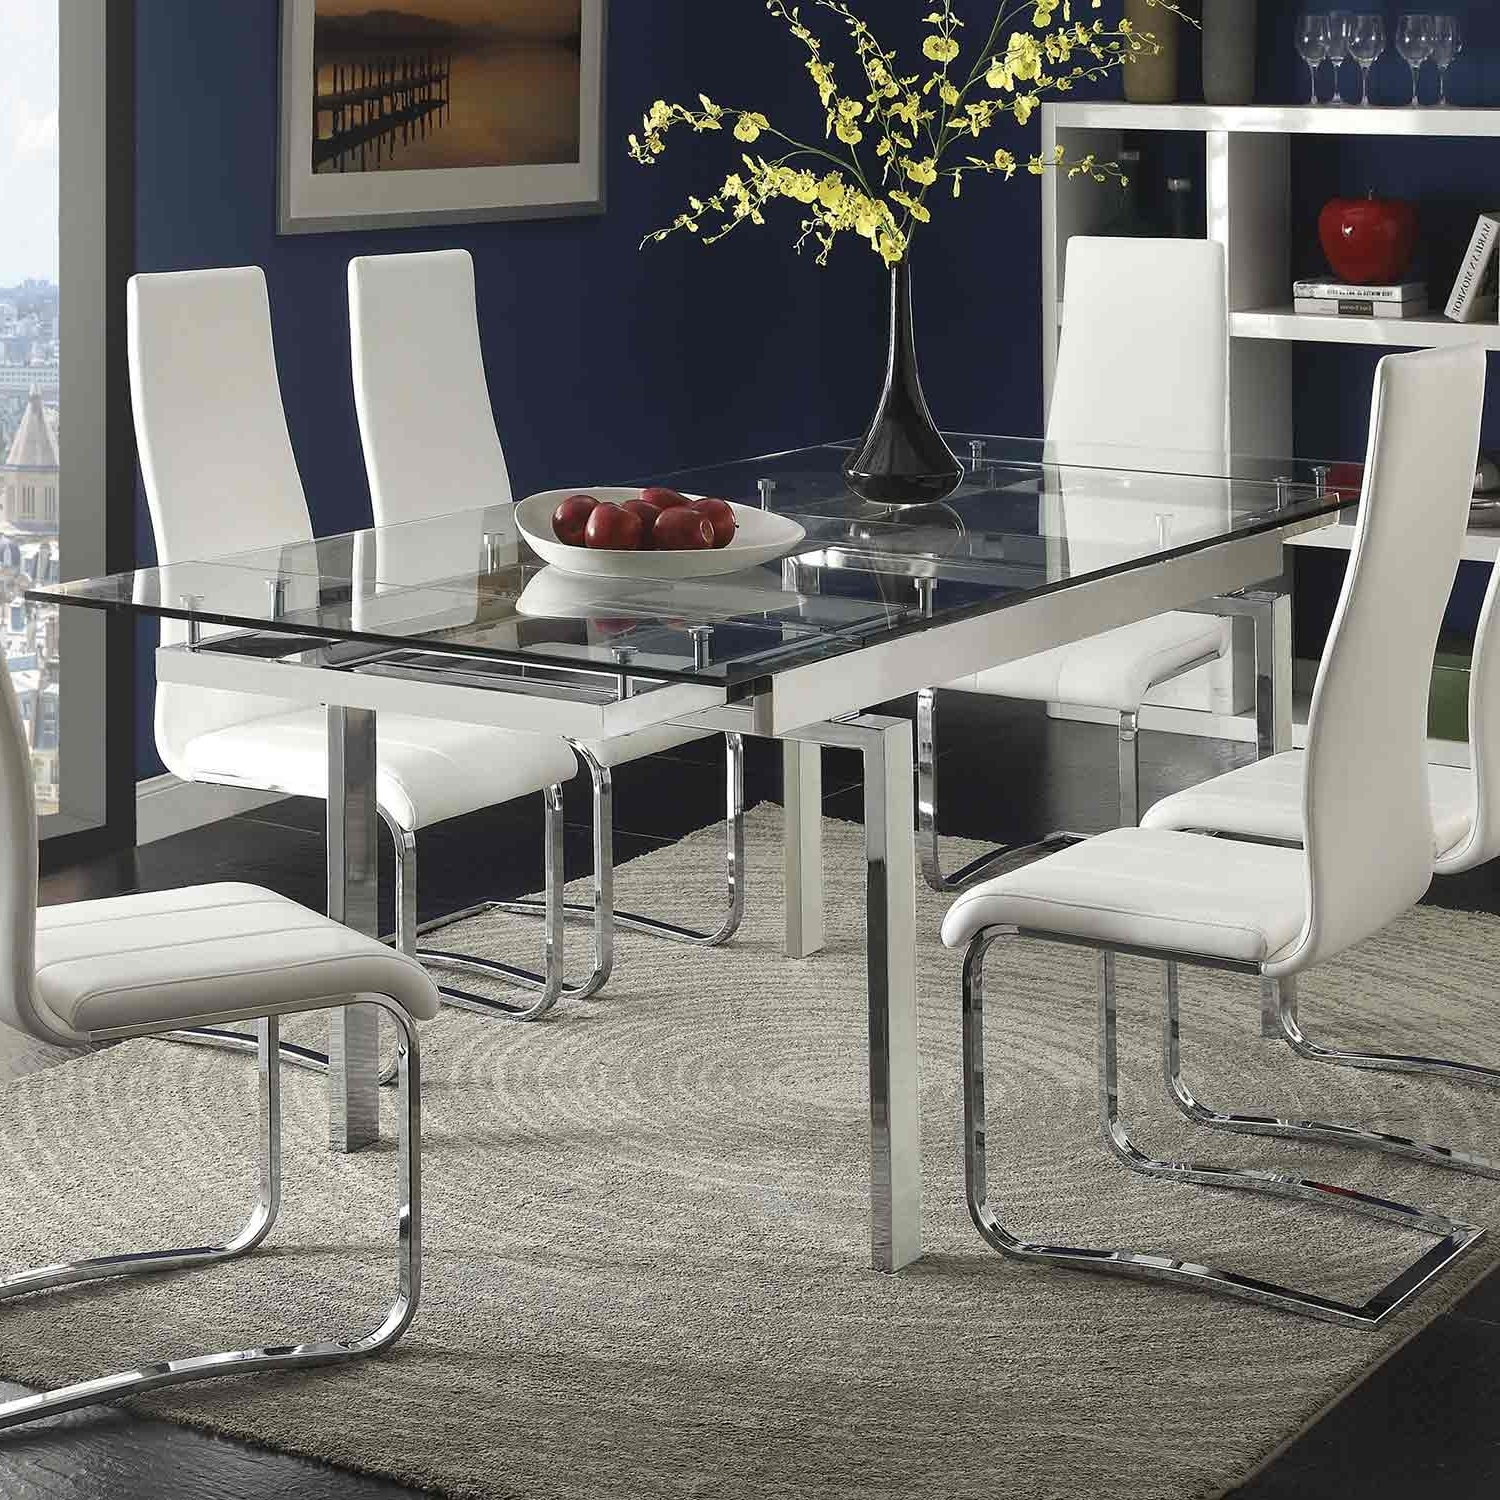 Coaster Wexford Rectangular Expandable Glass Dining Table – Chrome With Regard To Latest Chrome Dining Room Sets (View 9 of 25)